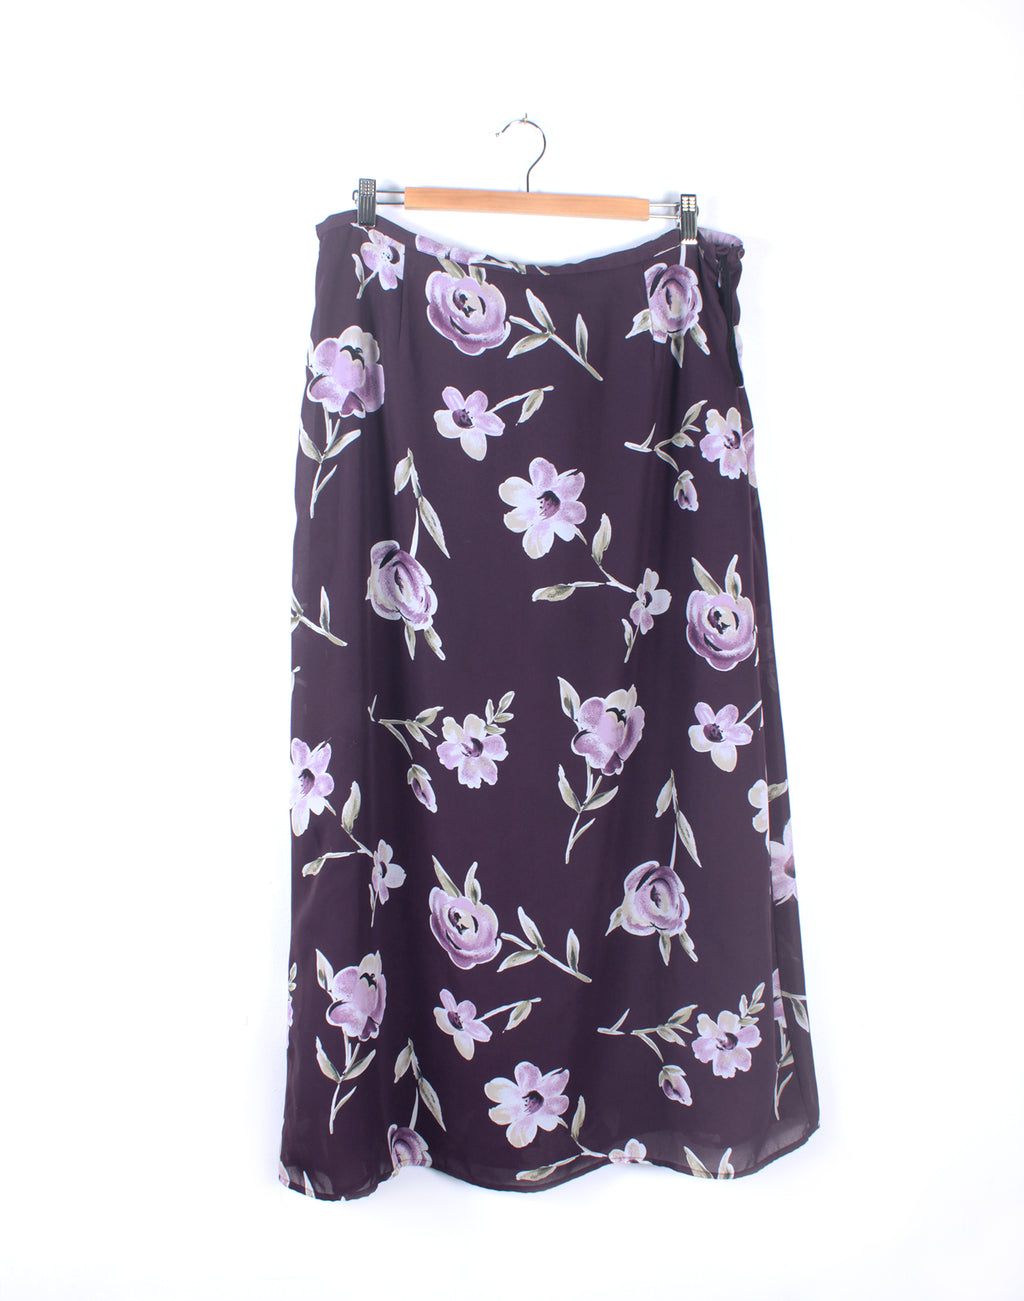 Vintage 90's Purple Floral Long Skirt